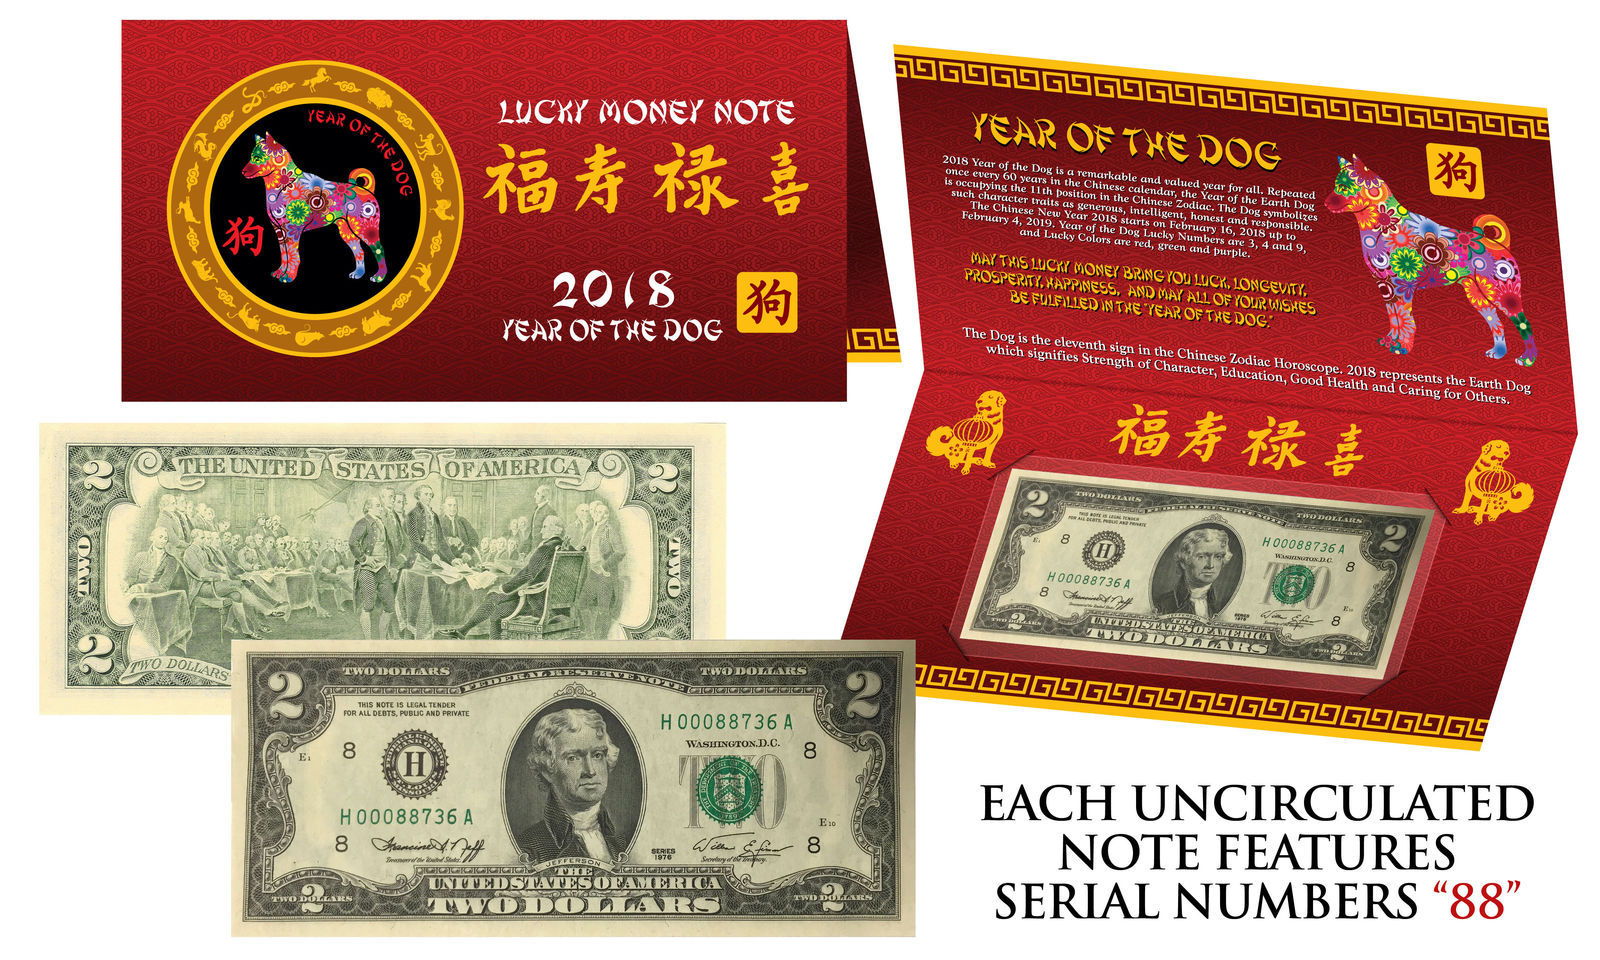 Chinese Zodiac Official $2 U.S Bill RED POLYCHROME Edition YEAR of the PIG